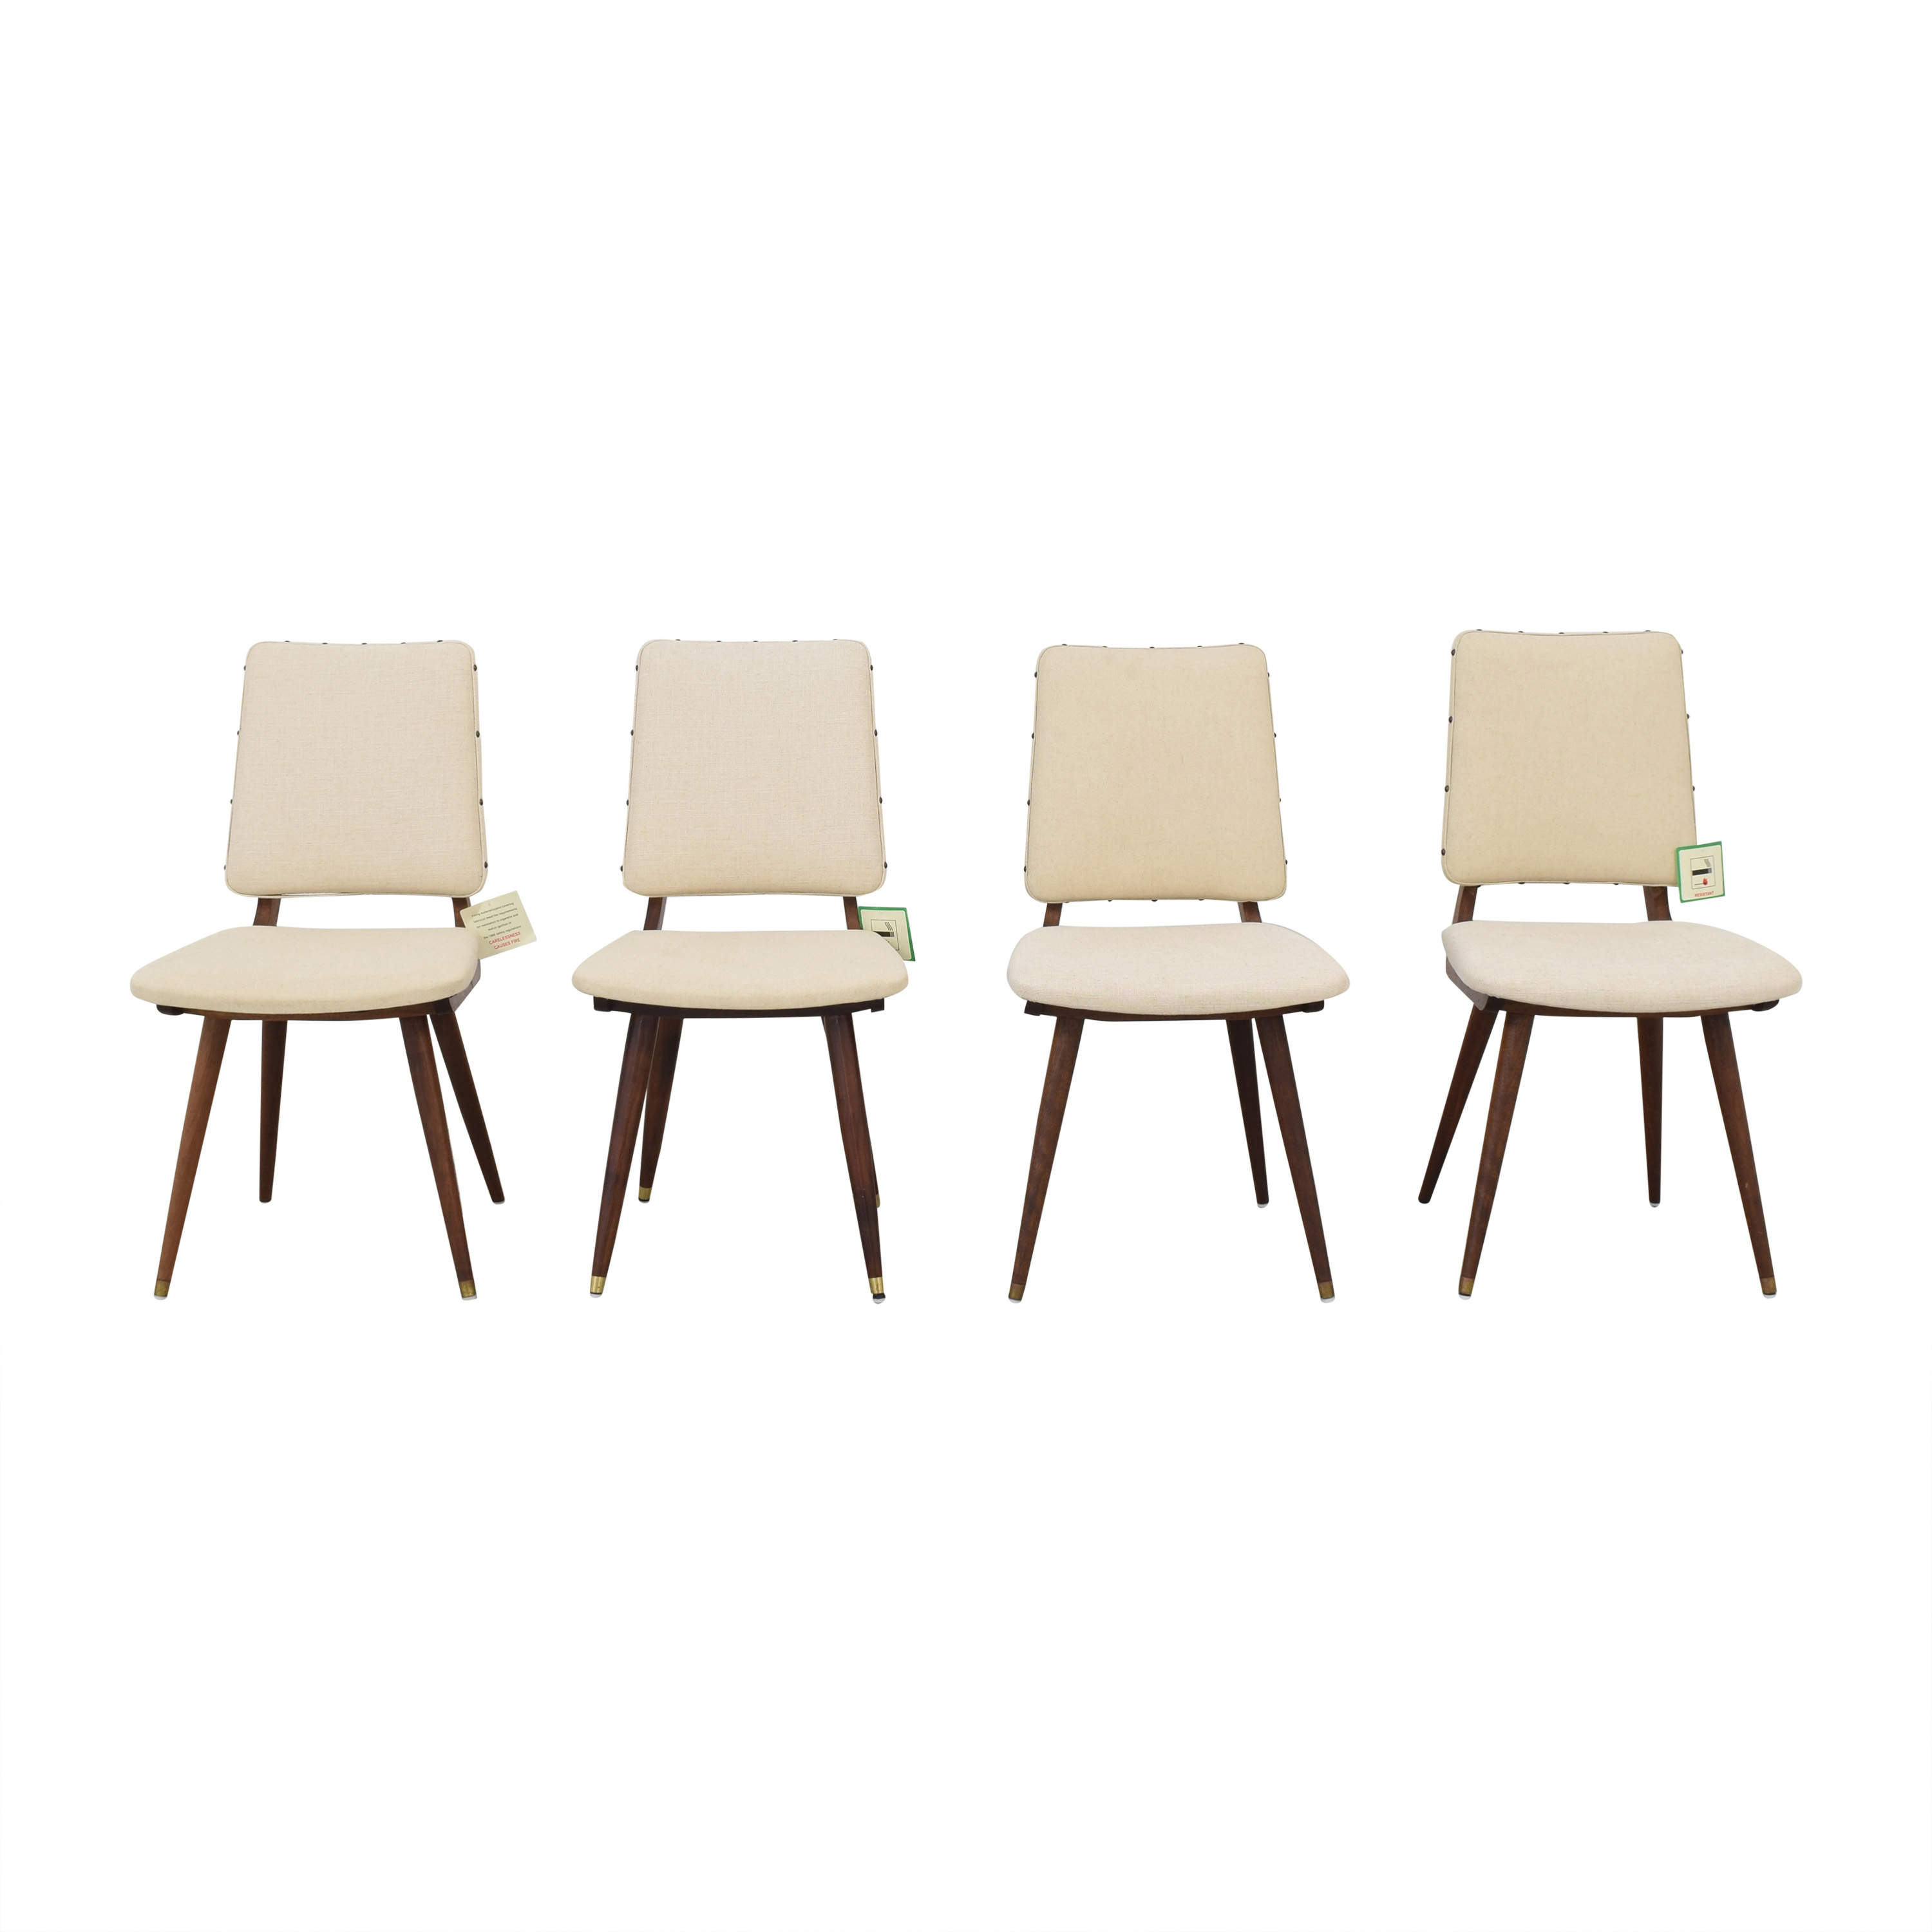 Jonathan Adler Camille Dining Chairs sale